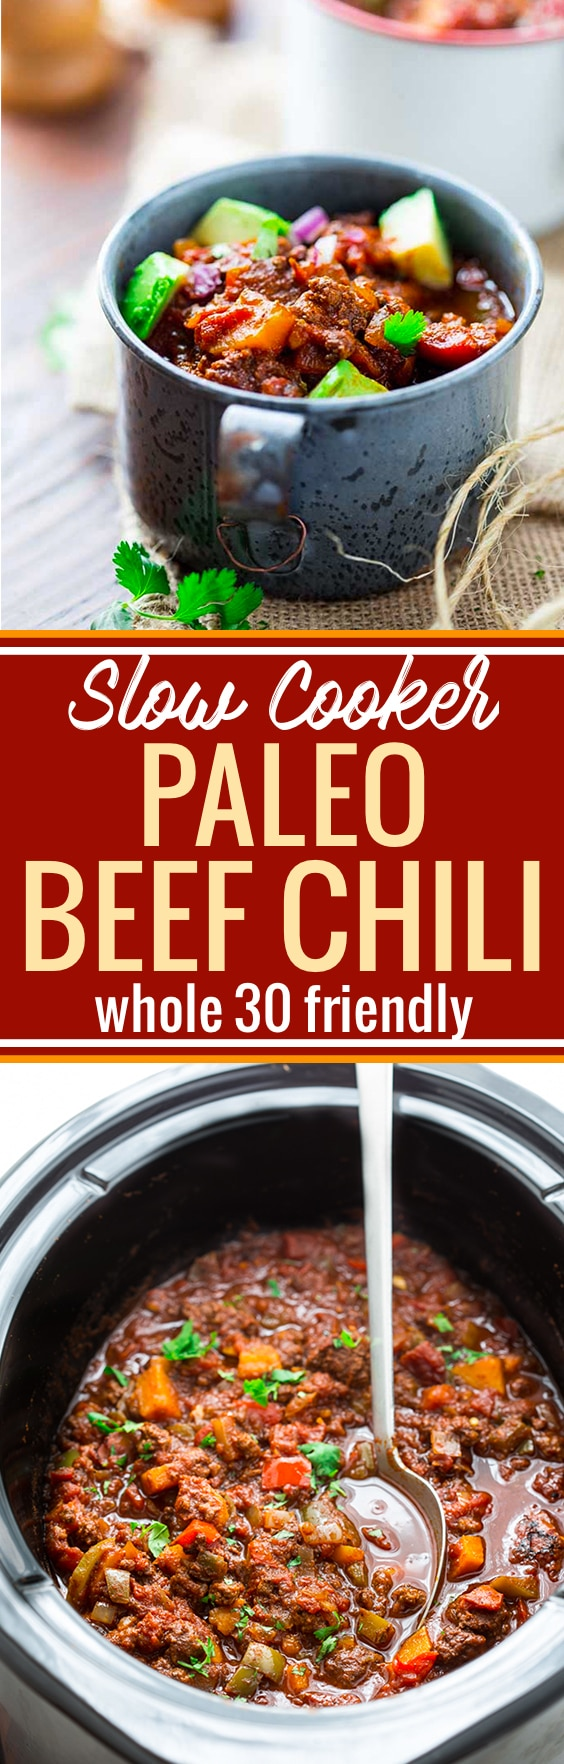 This paleo beef chili is not only easy to make in the slow cooker, but also full of flavor! Loaded with sweet potatoes, beef, spices, tomatoes, and more. It's whole 30 friendly, quick to prep, and pure comfort food. Hearty yet healthy! www.cottercrunch.com